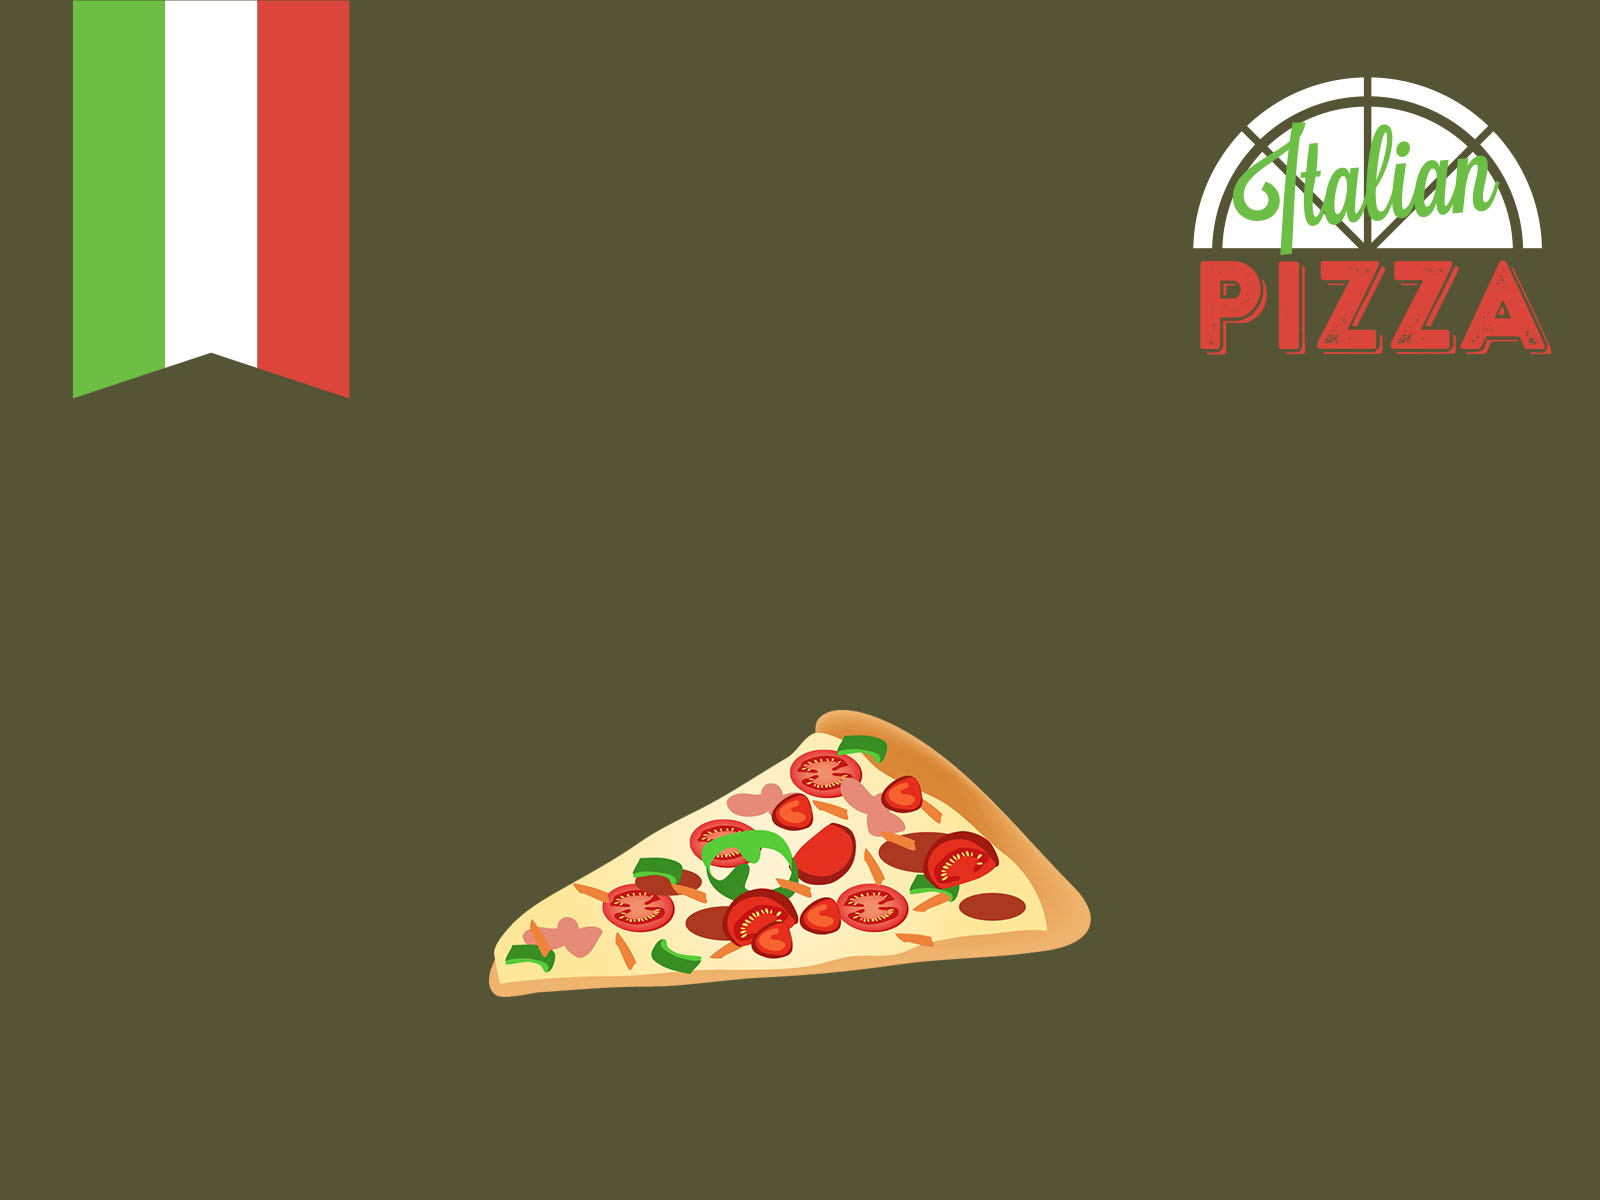 italian pizza backgrounds for powerpoint templates - ppt backgrounds, Modern powerpoint